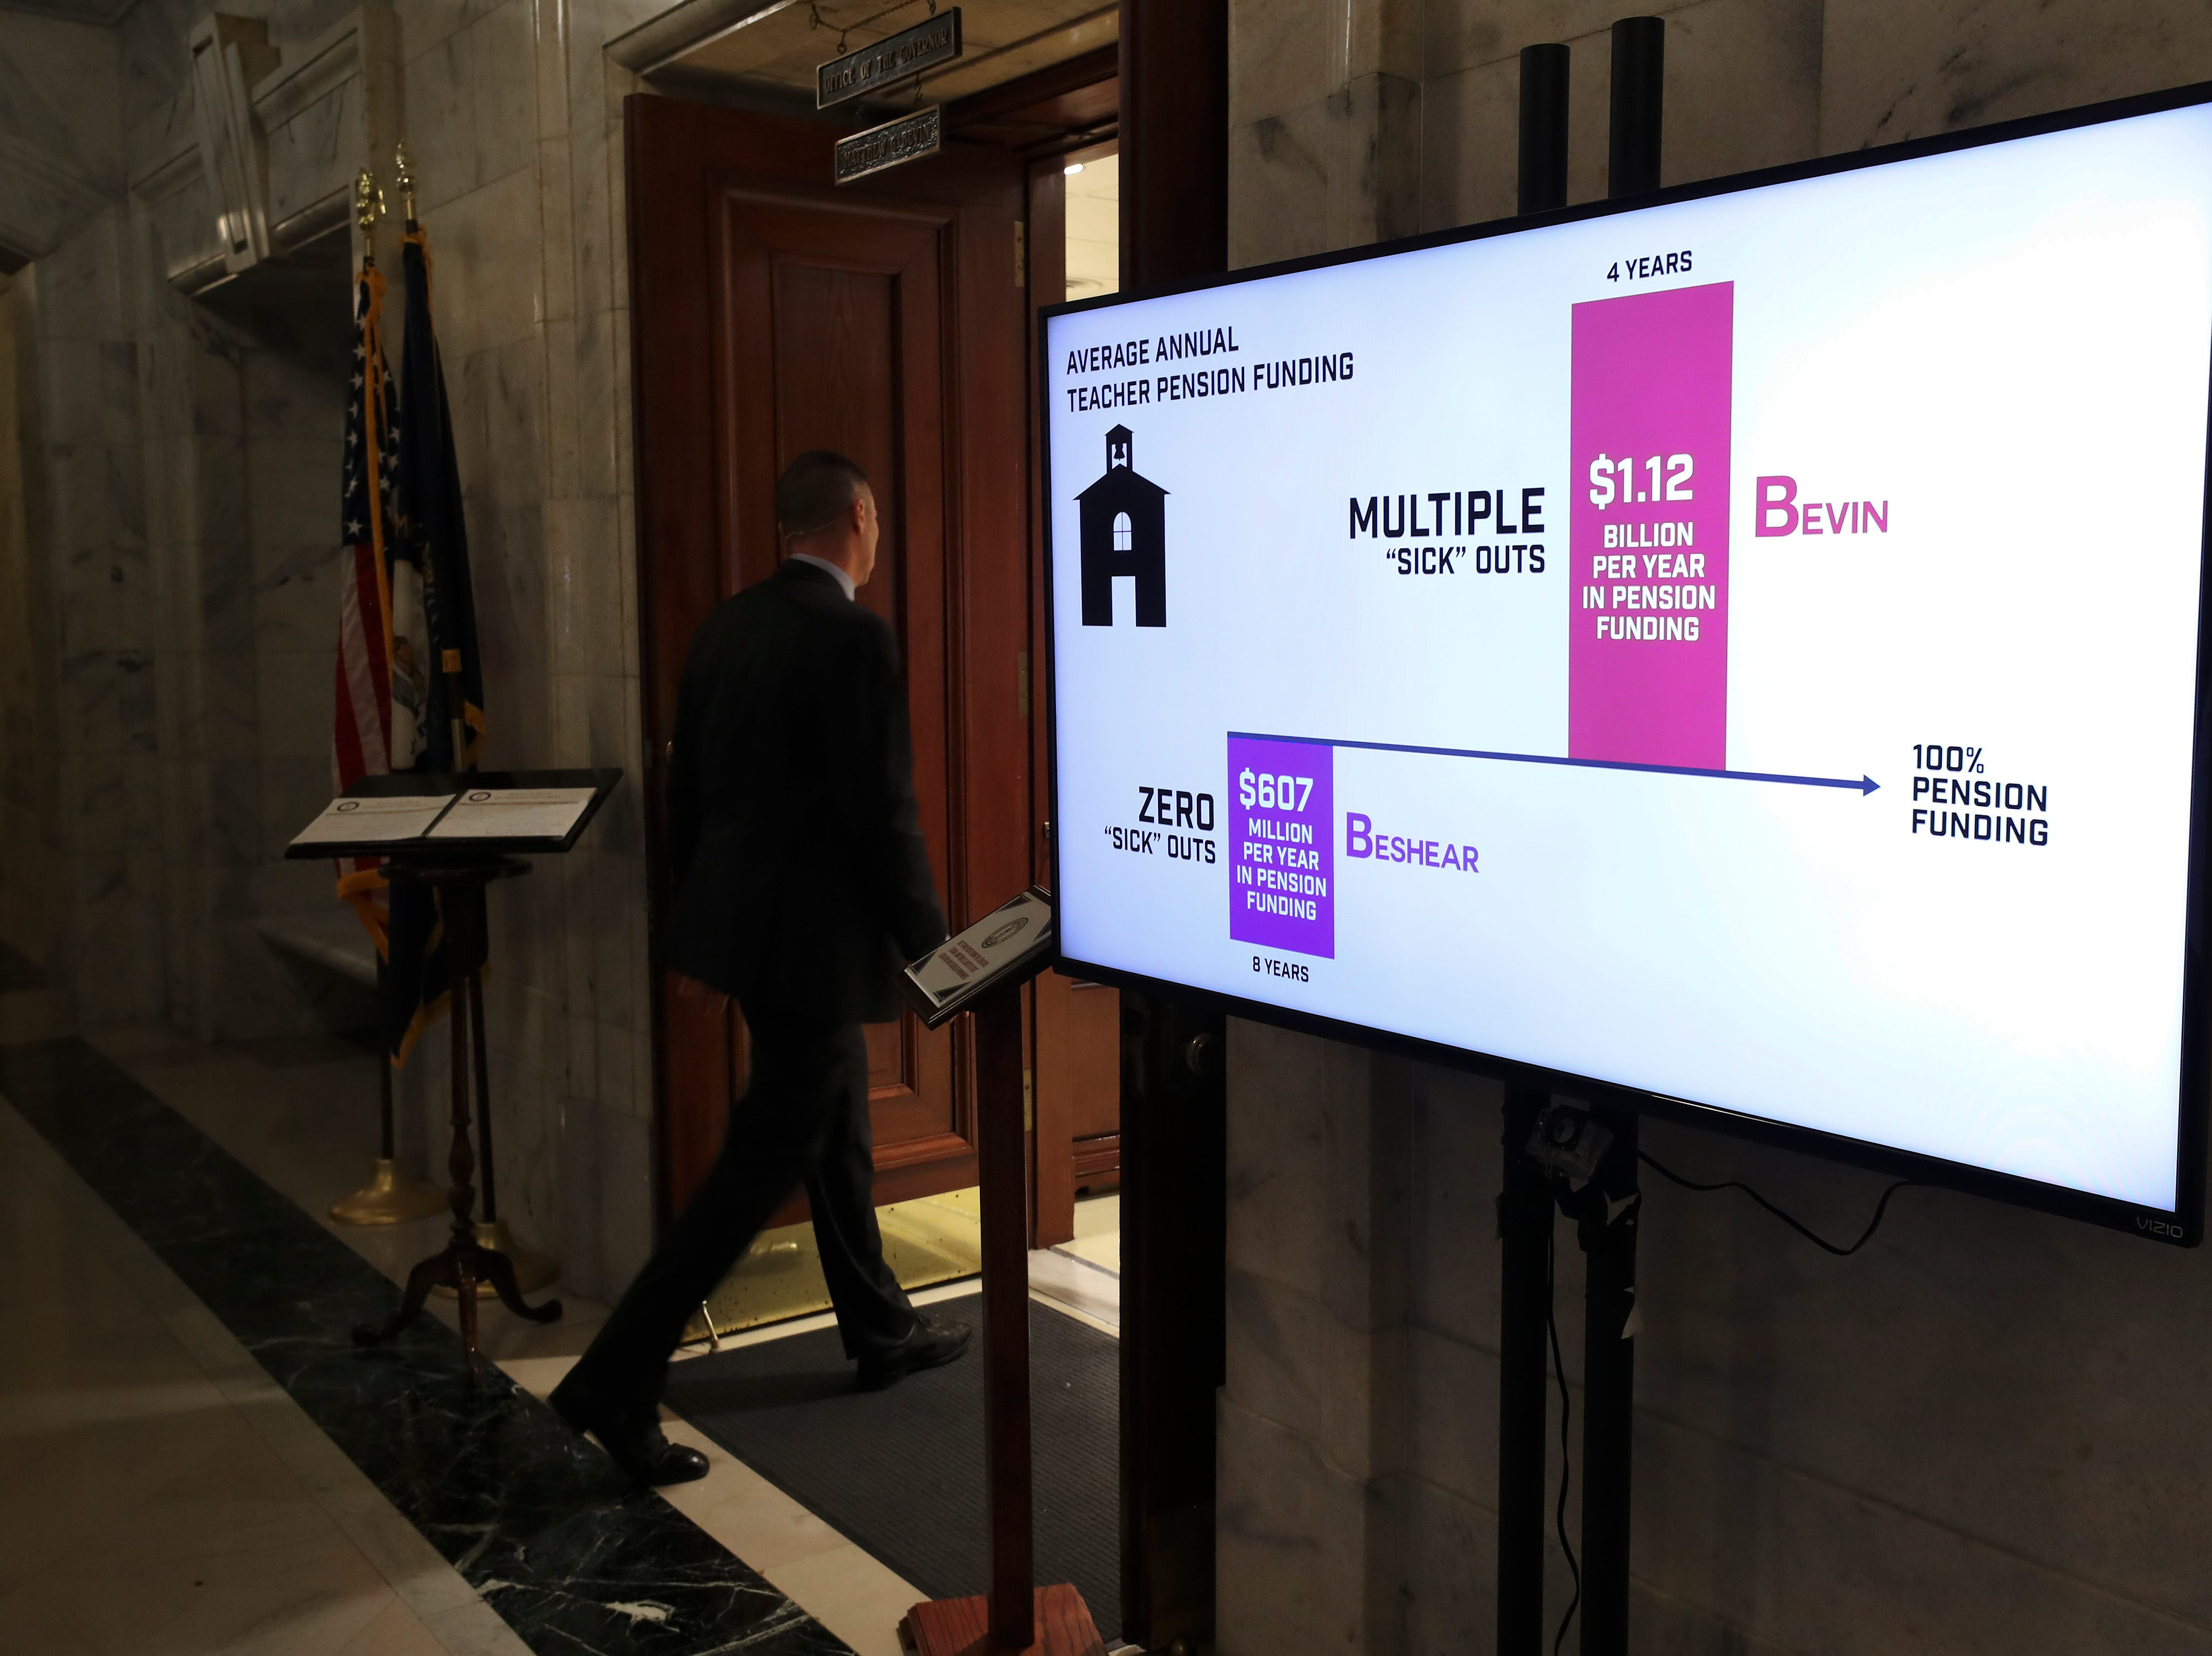 A monitor outside Gov. Matt Bevin's office claims that the teacher pension has received more funding than the previous administration of Gov. Steve Beshear despite the recent sick out protests. March 13, 2019